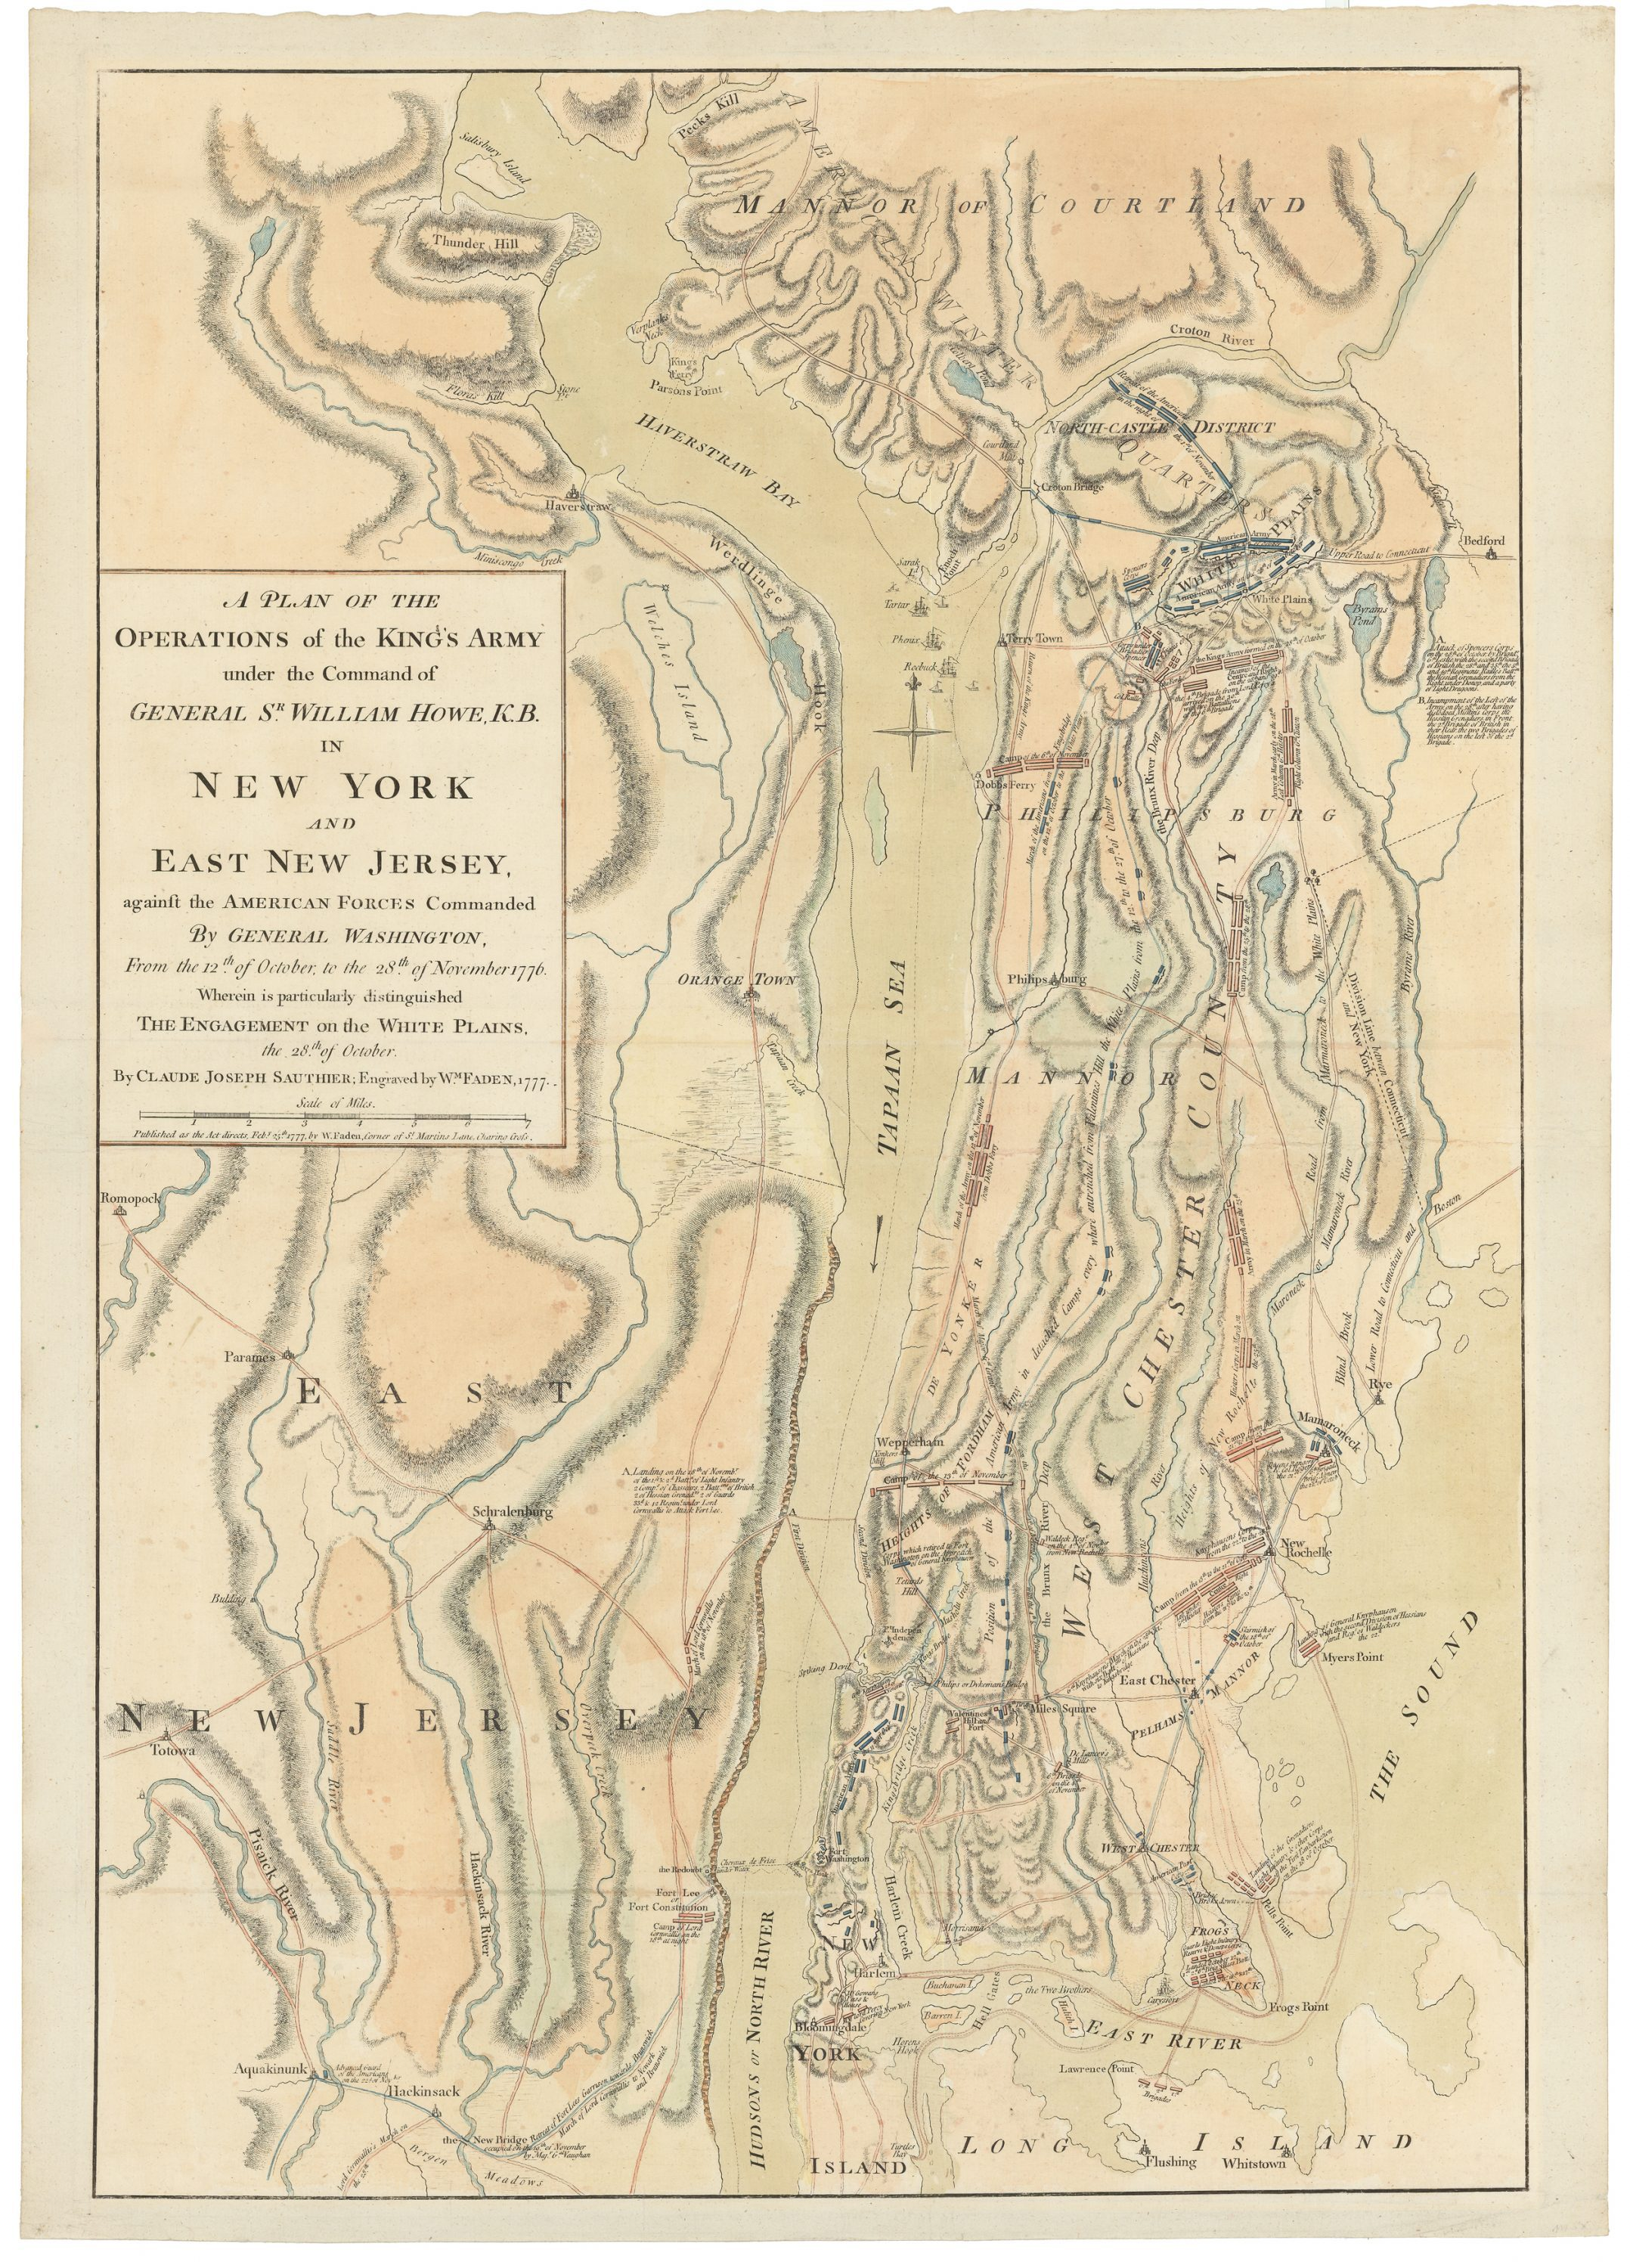 Map Of New York 1776.Sauthier Faden Map Of The 1776 New York Campaign Culminating In The